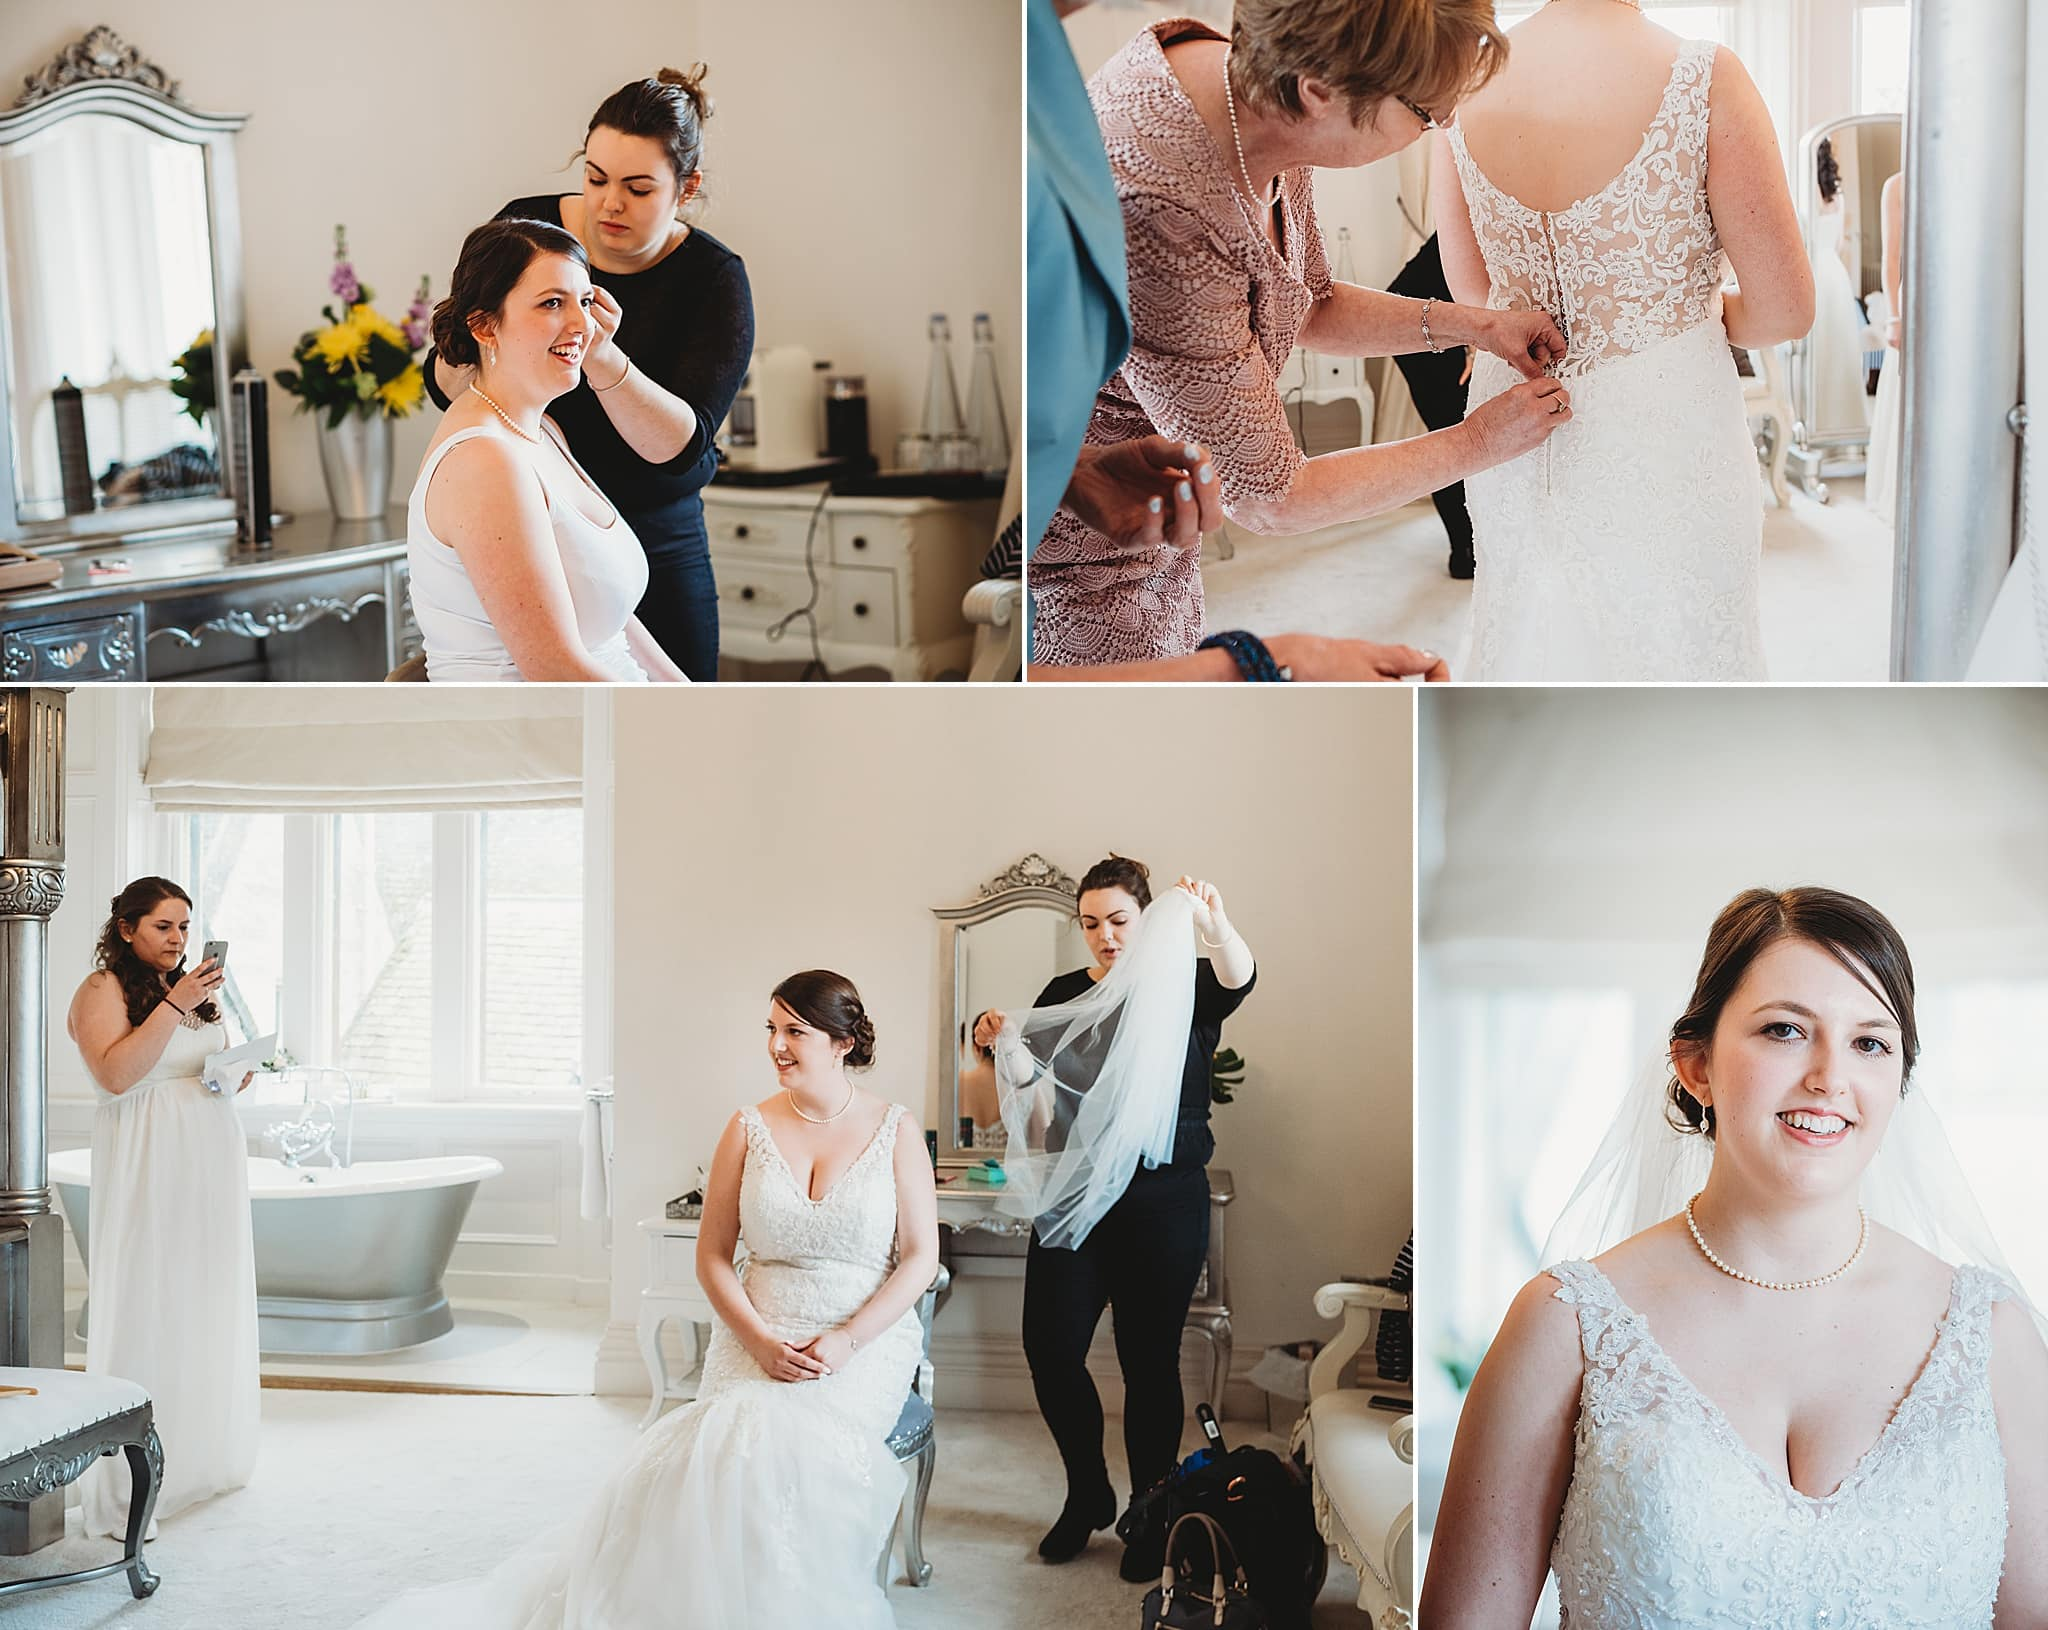 Bride getting ready in the bridal suite at Manor by the lake